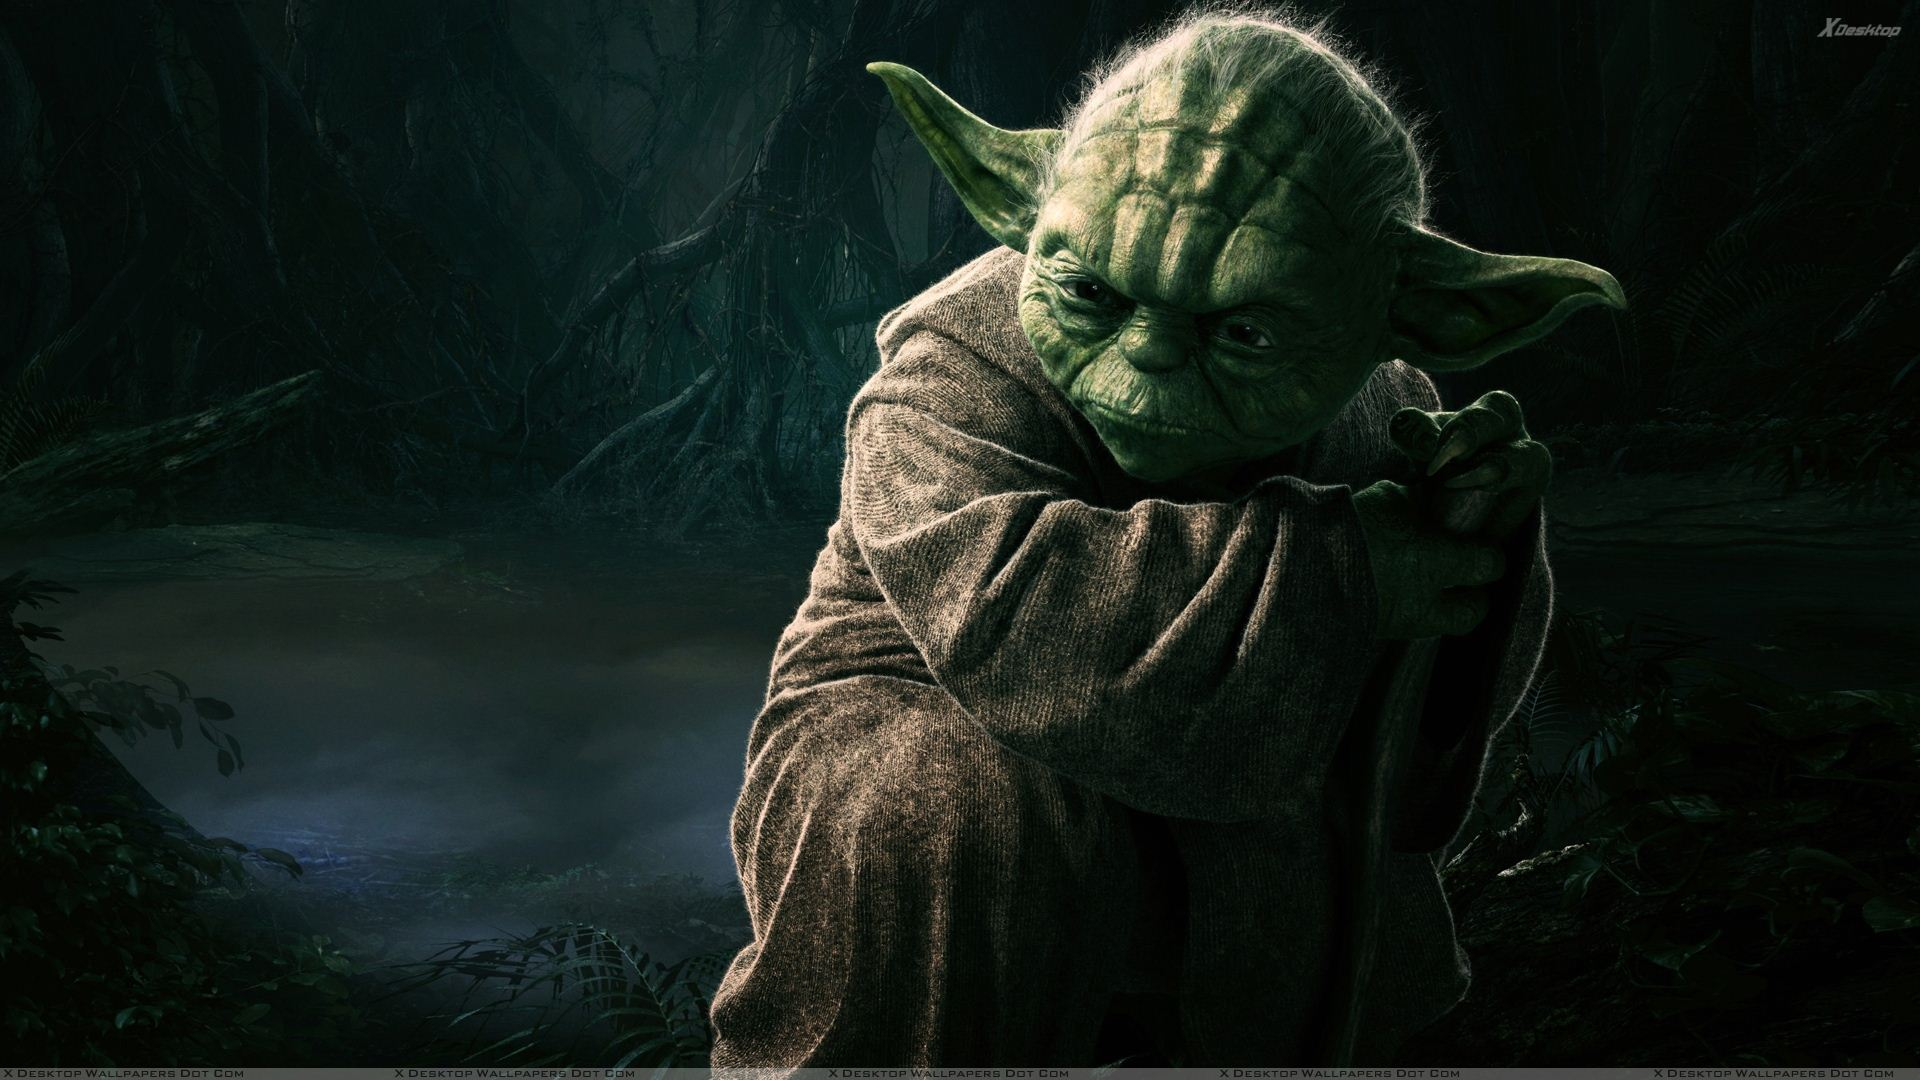 Star%20Wars %20Episode%20II%20 %20Attack%20of%20the%20Clones %20Frank%20Oz%20As%20Yoda